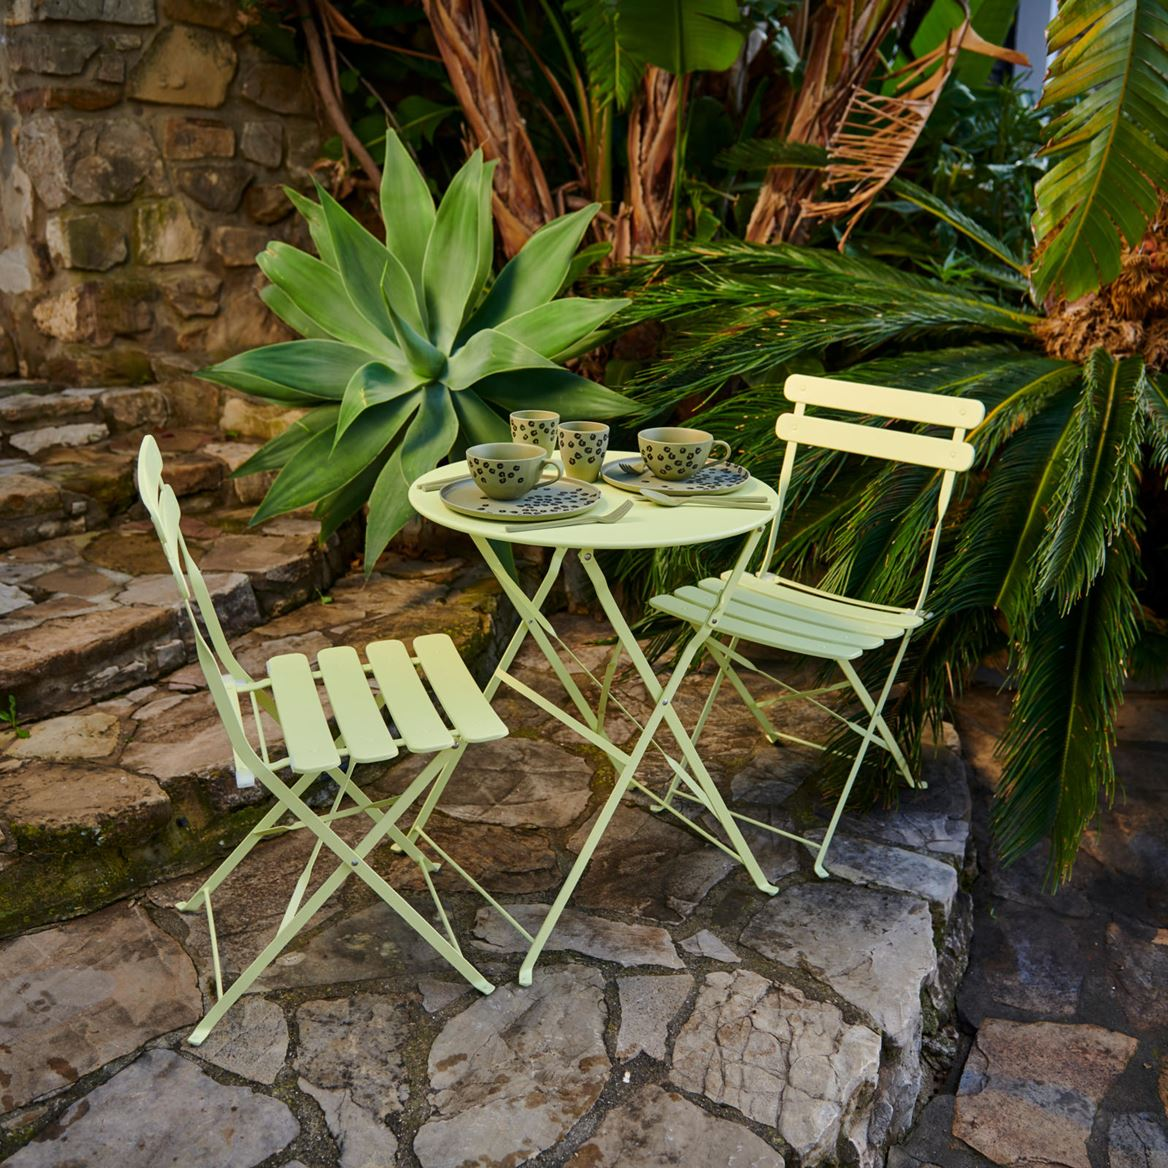 IMPERIAL Bistro chaise lime H 82 x Larg. 42 x P 46,5 cm_imperial-bistro-chaise-lime-h-82-x-larg--42-x-p-46,5-cm